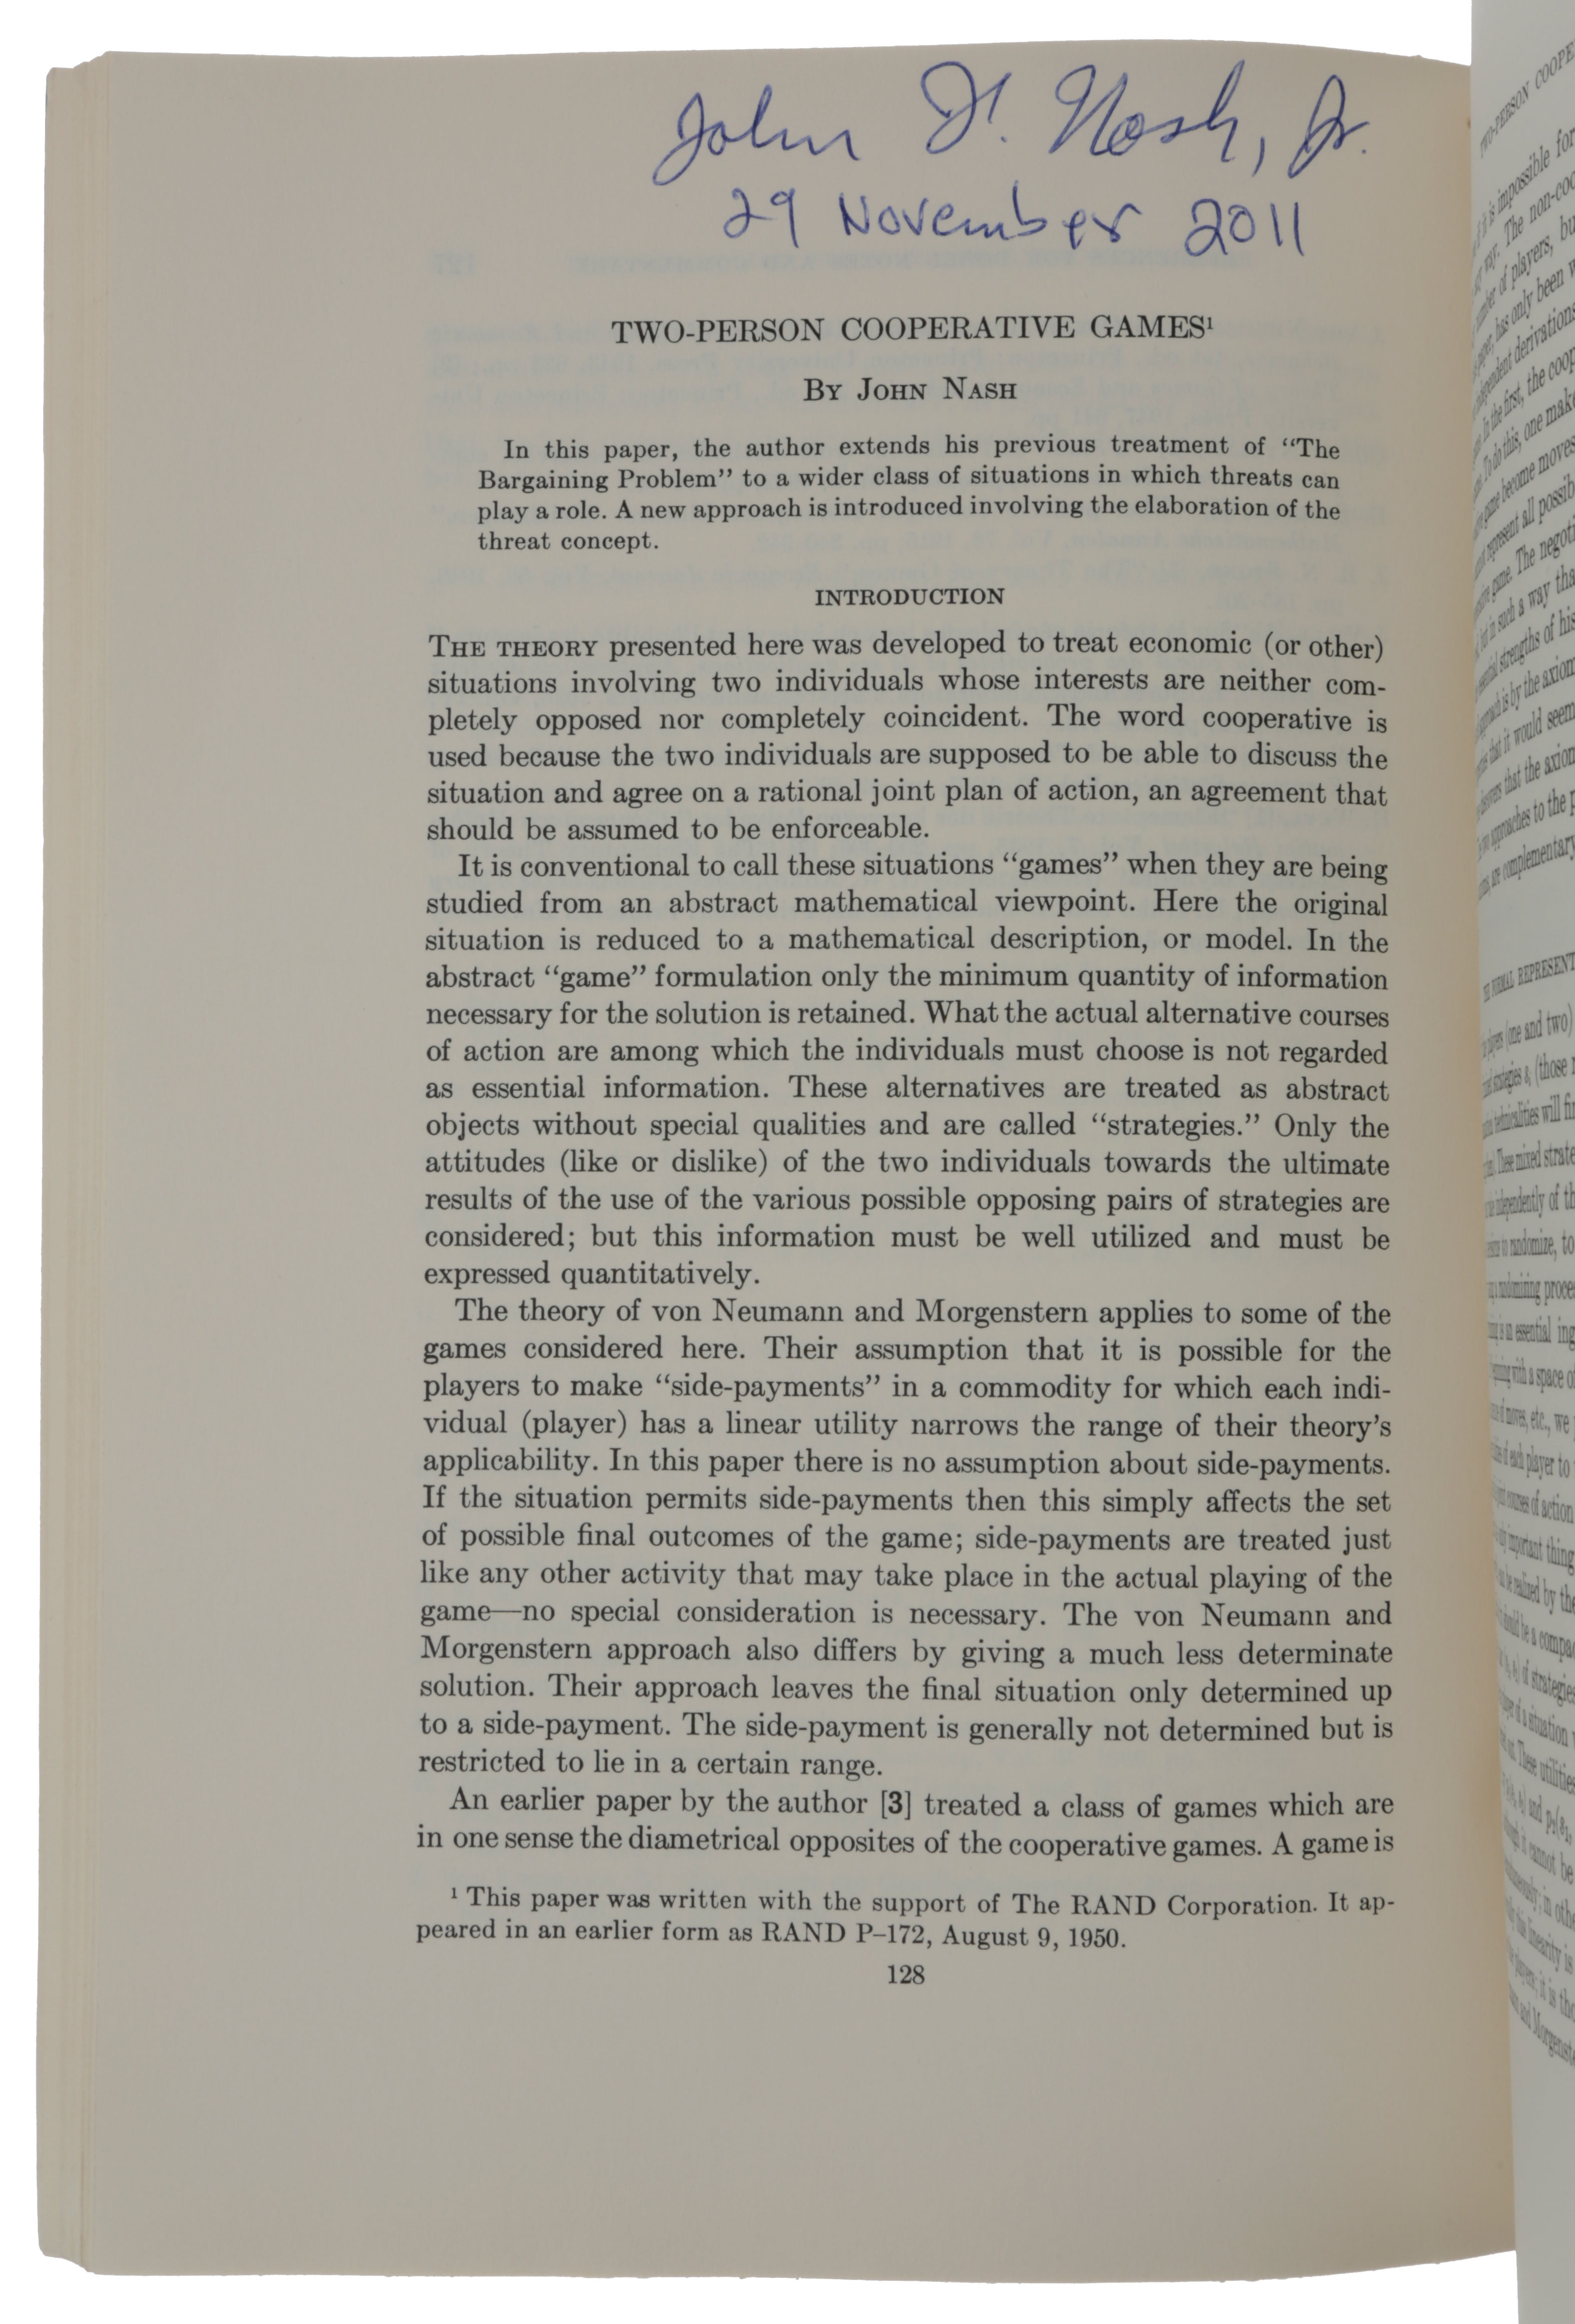 'Two-person cooperative games,' pp. 128-140 in: Econometrica, Vol. 21, No. 1, January 1953. John NASH.